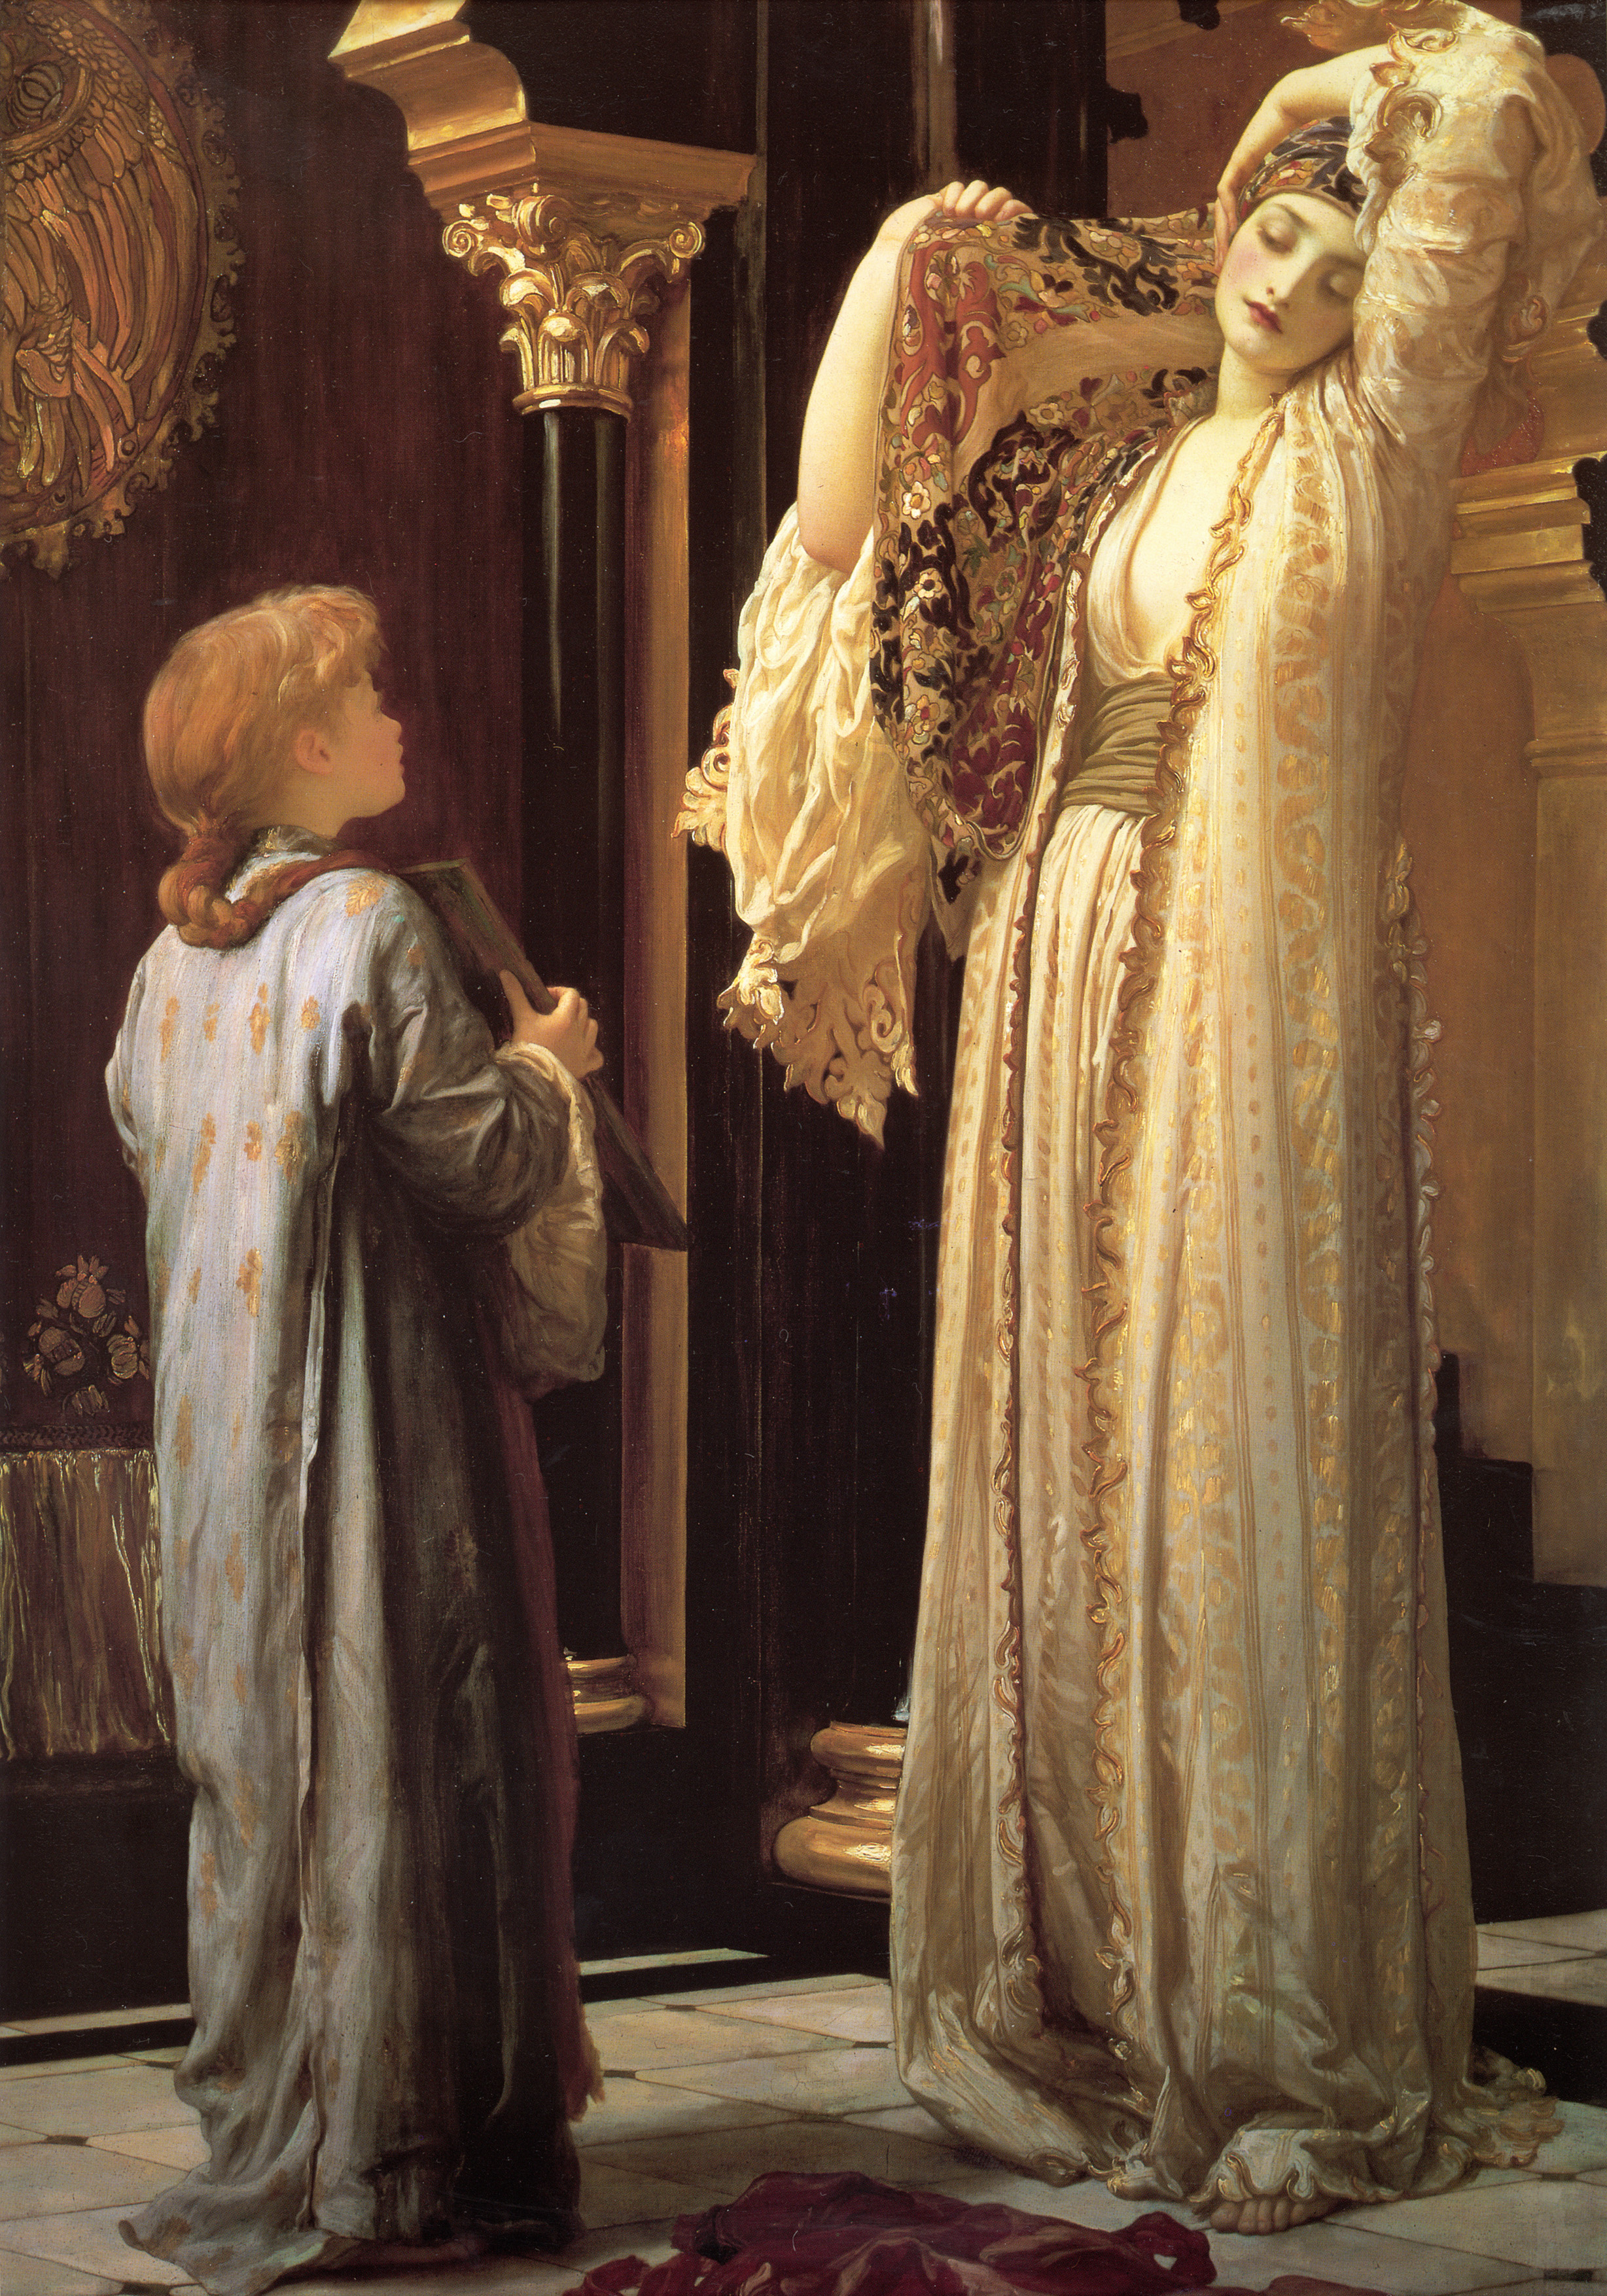 http://upload.wikimedia.org/wikipedia/commons/0/04/Leighton-Light_of_the_Harem-c._1880.jpg